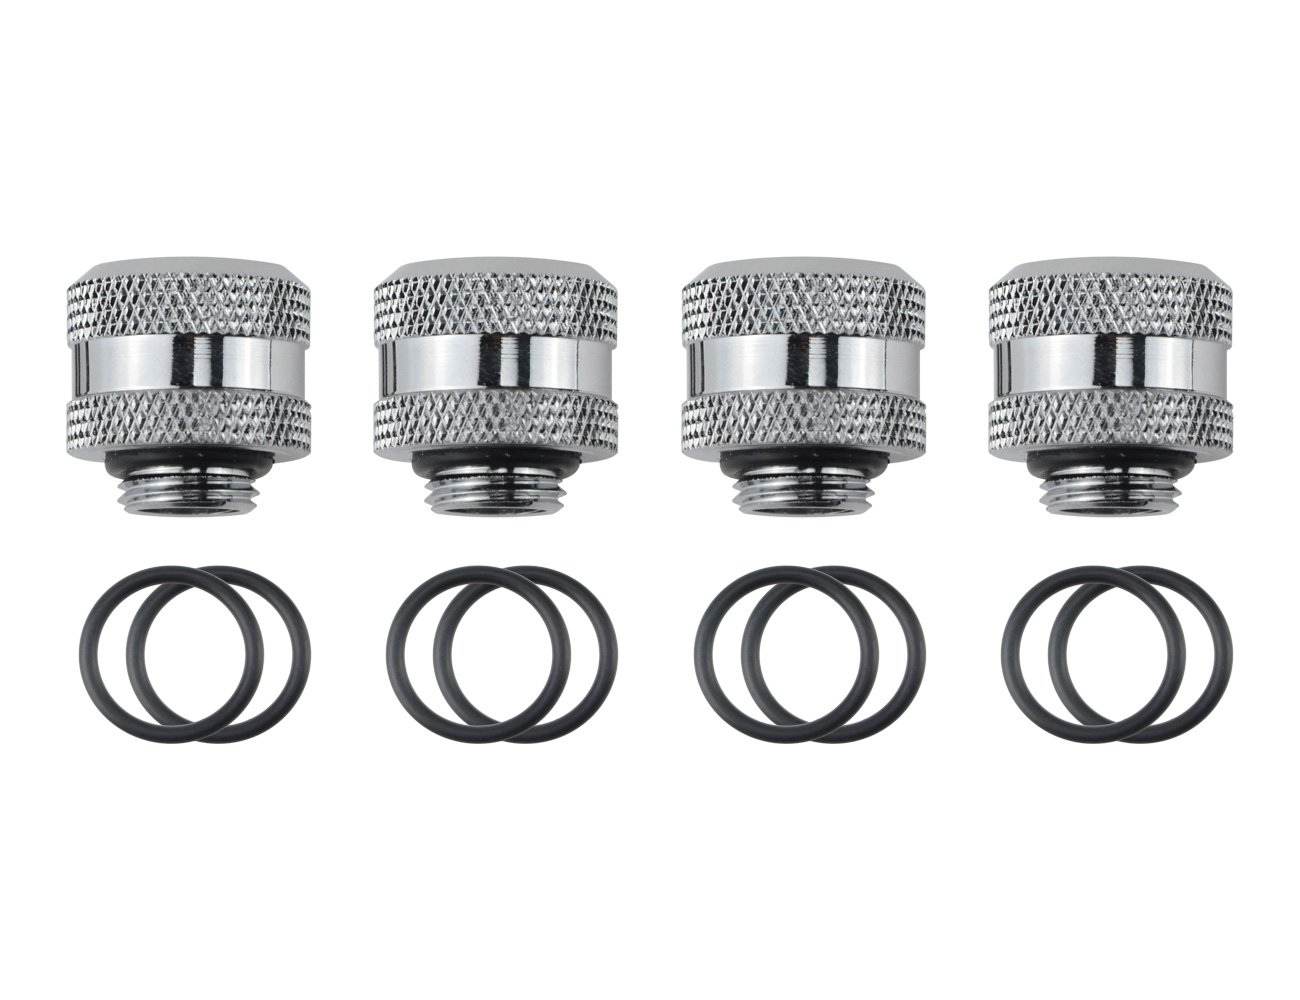 """BXQINLENX Silver Chrome G 1/4"""" to ID 10 mm, OD 14 mm PETG Triple Seal Fitting for Computer Water Cooling System Through Joint Straight Joint(4 PCS)"""